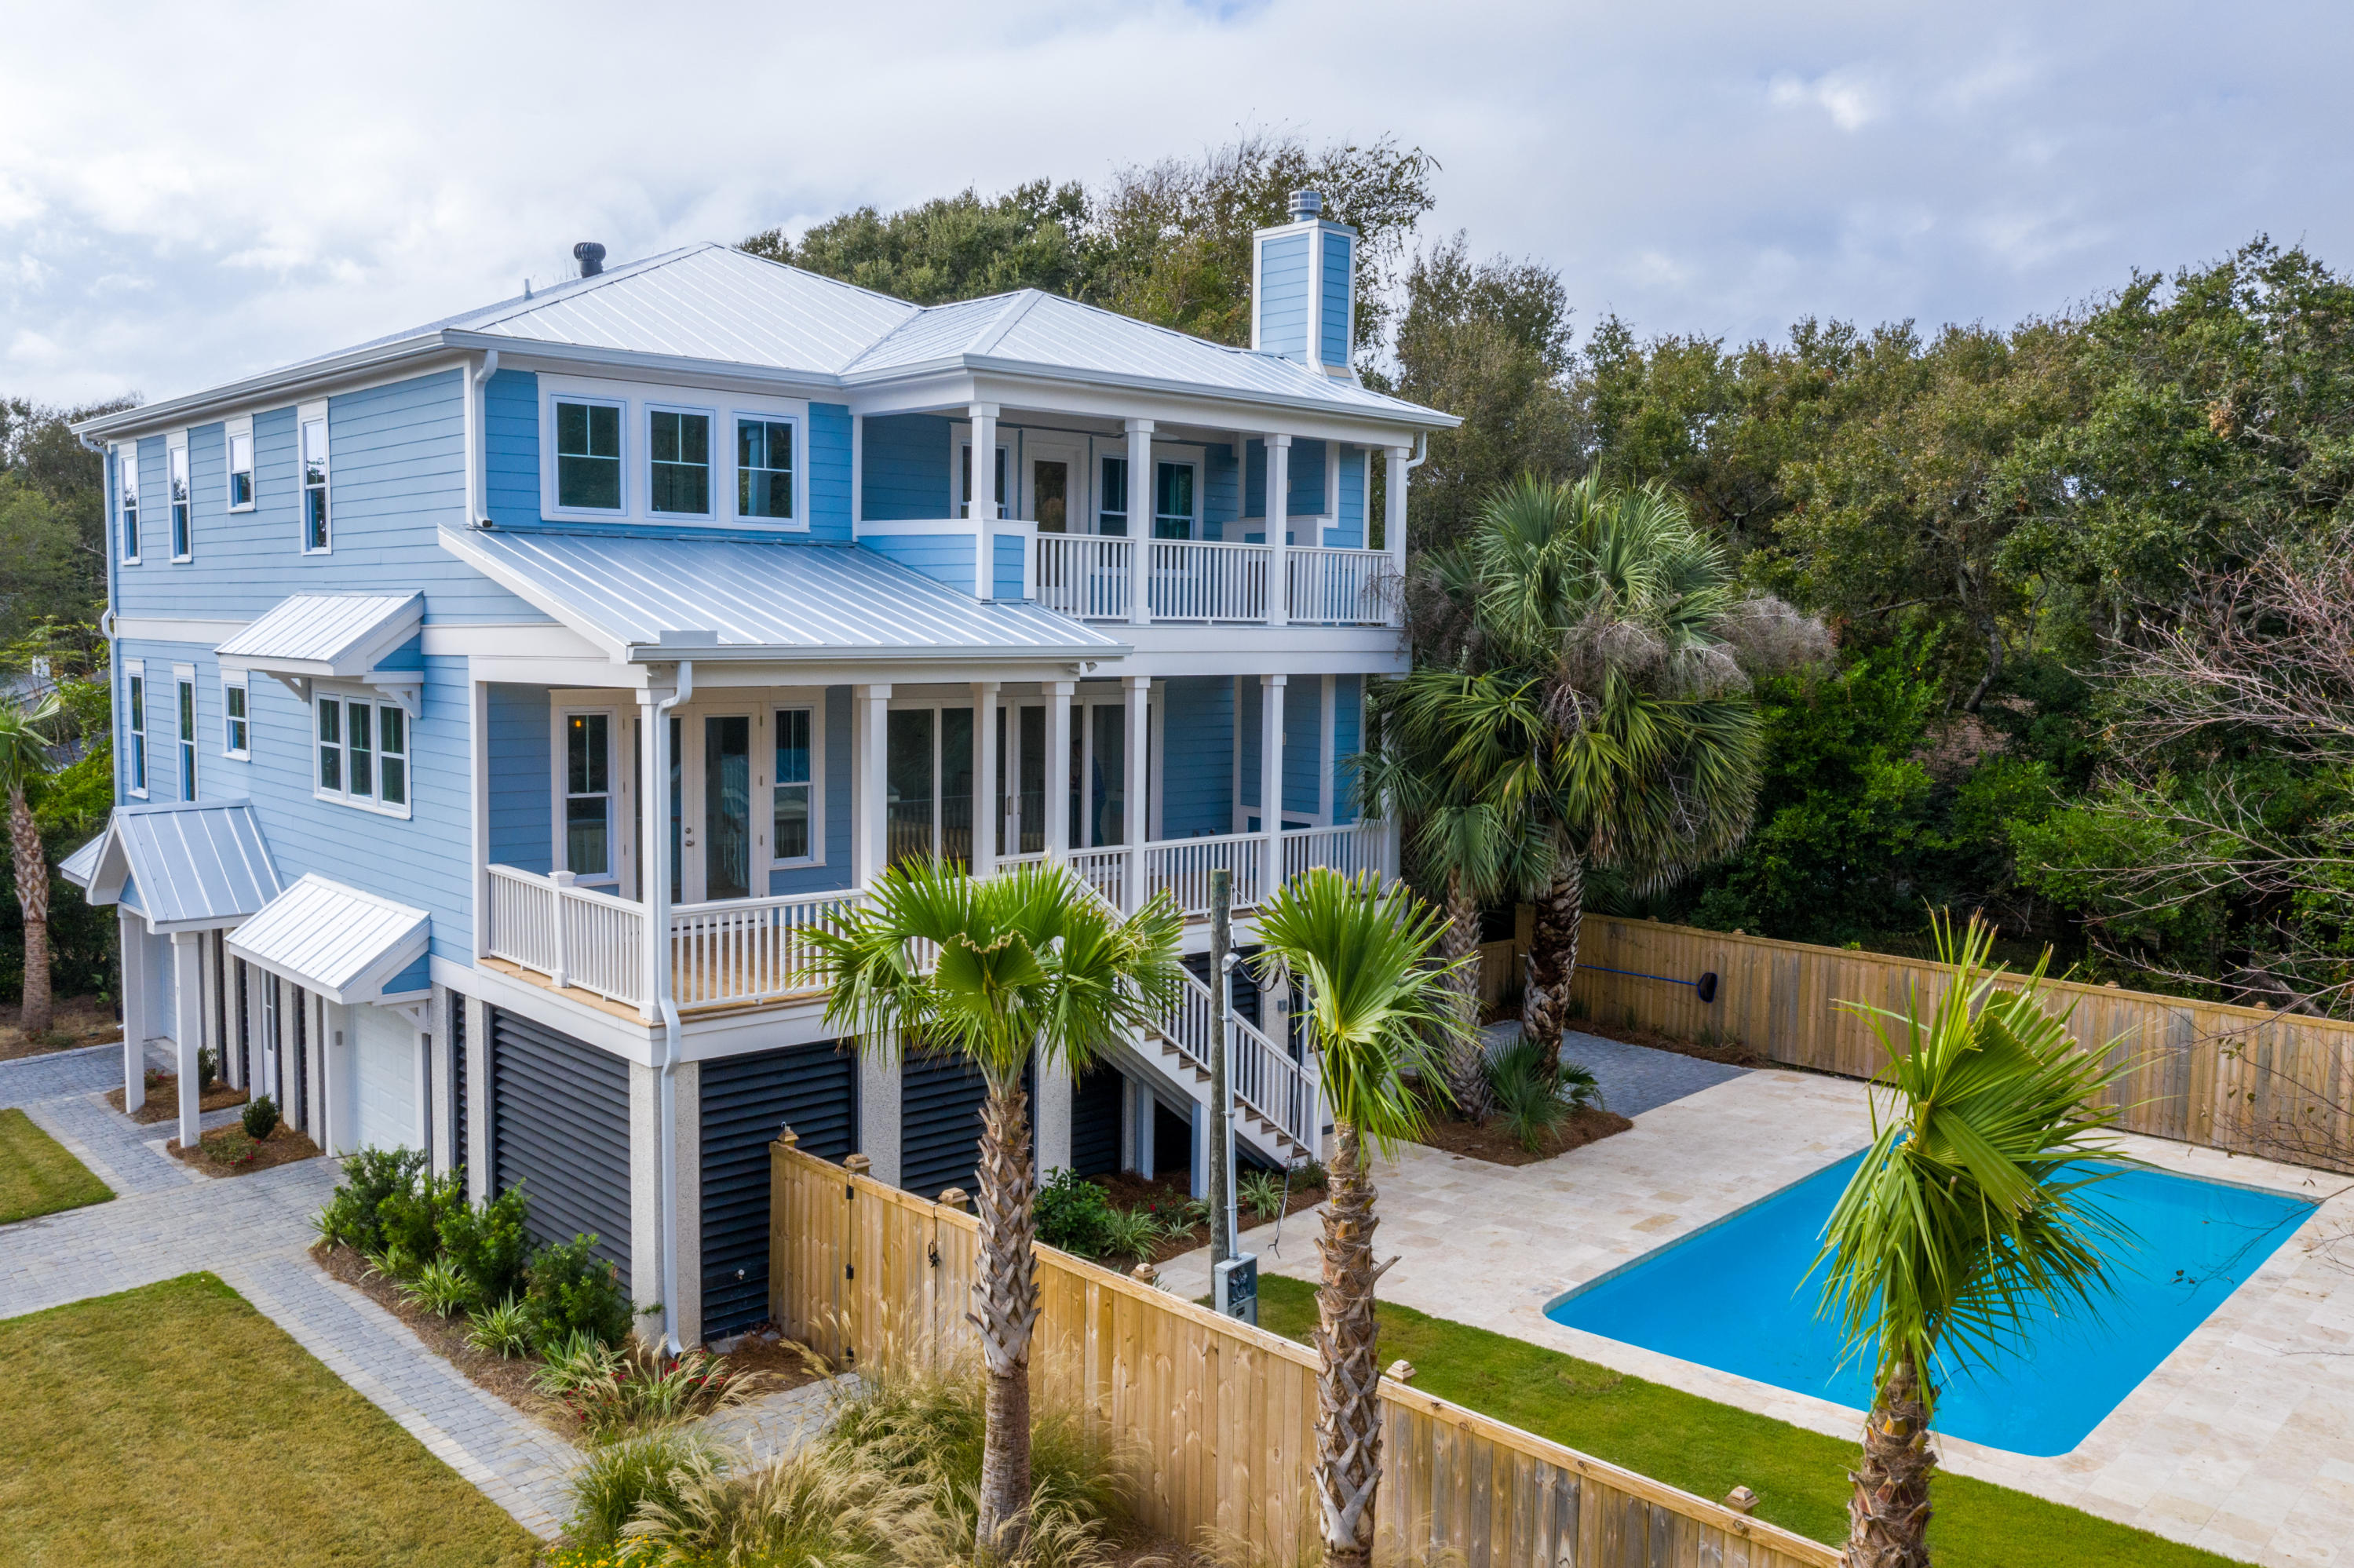 Isle of Palms Homes For Sale - 7 36th, Isle of Palms, SC - 0